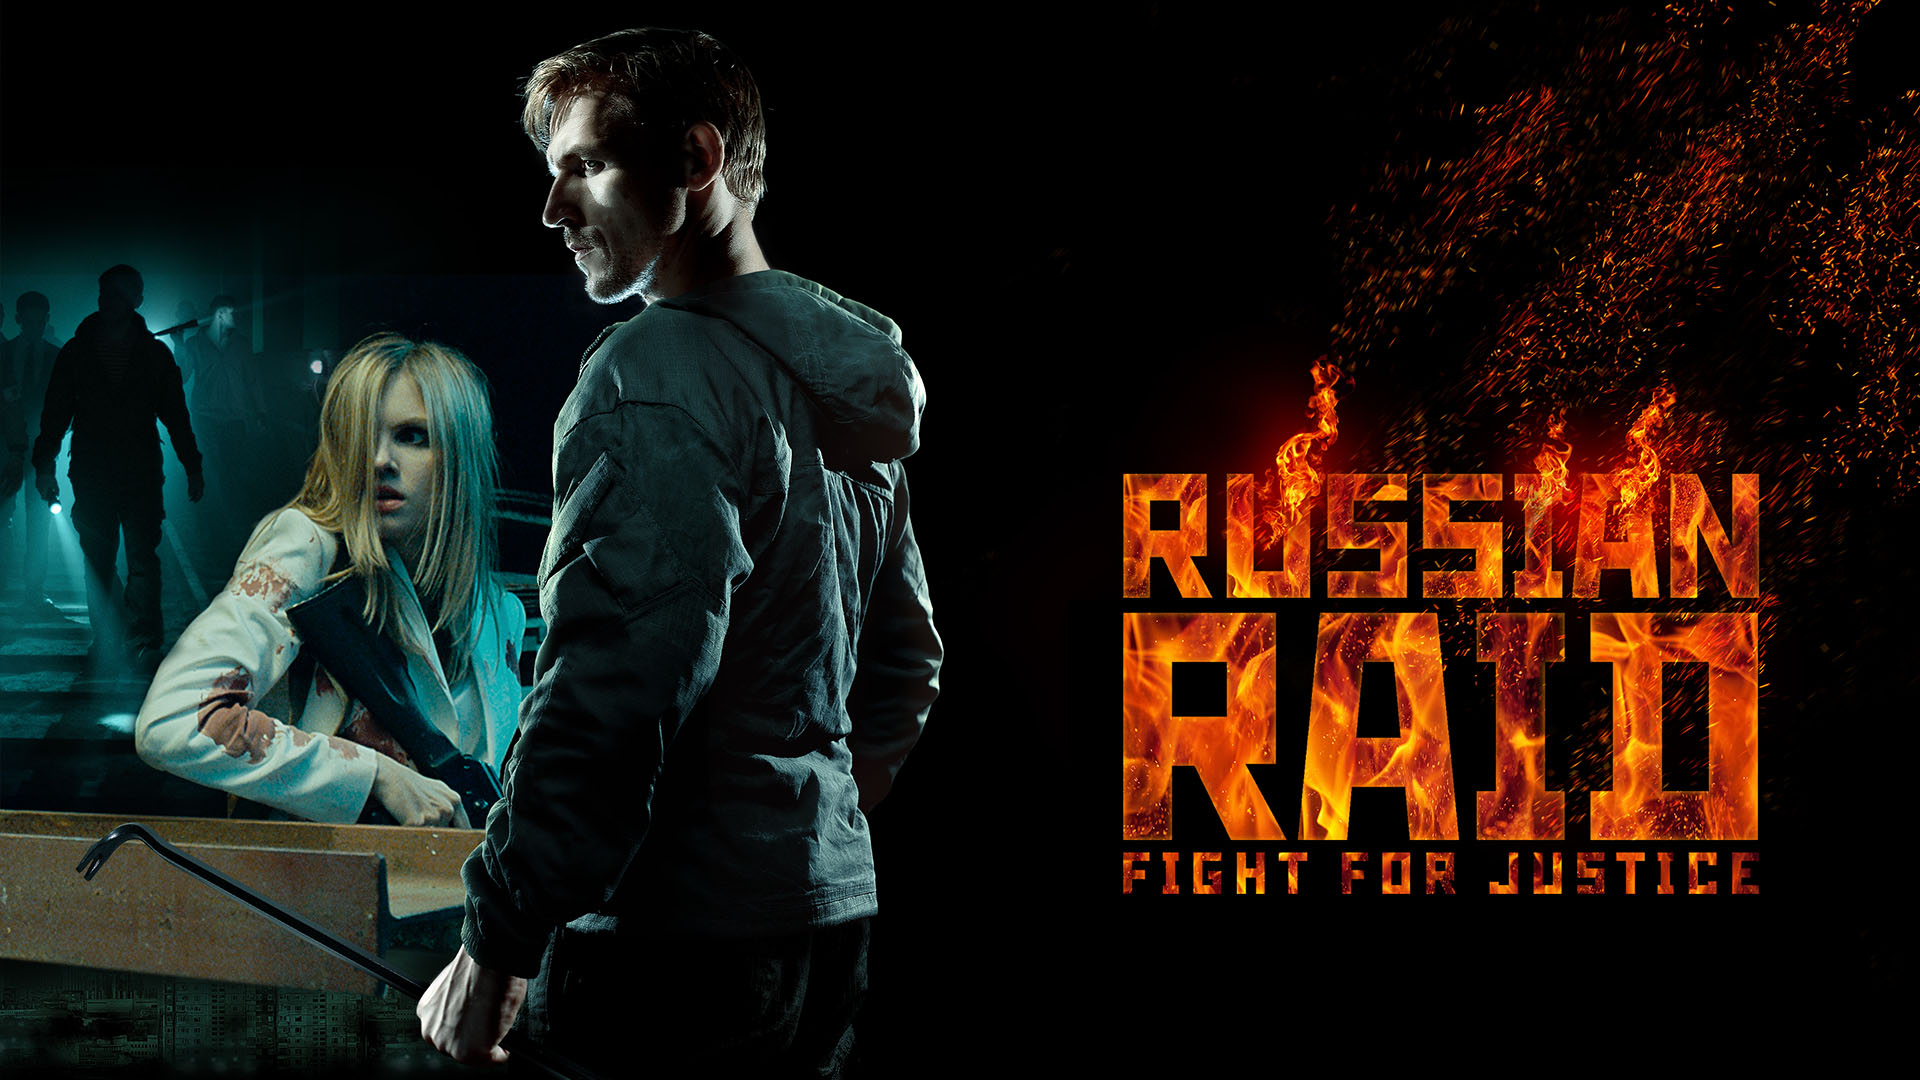 Russian Raid: Fight for Justice